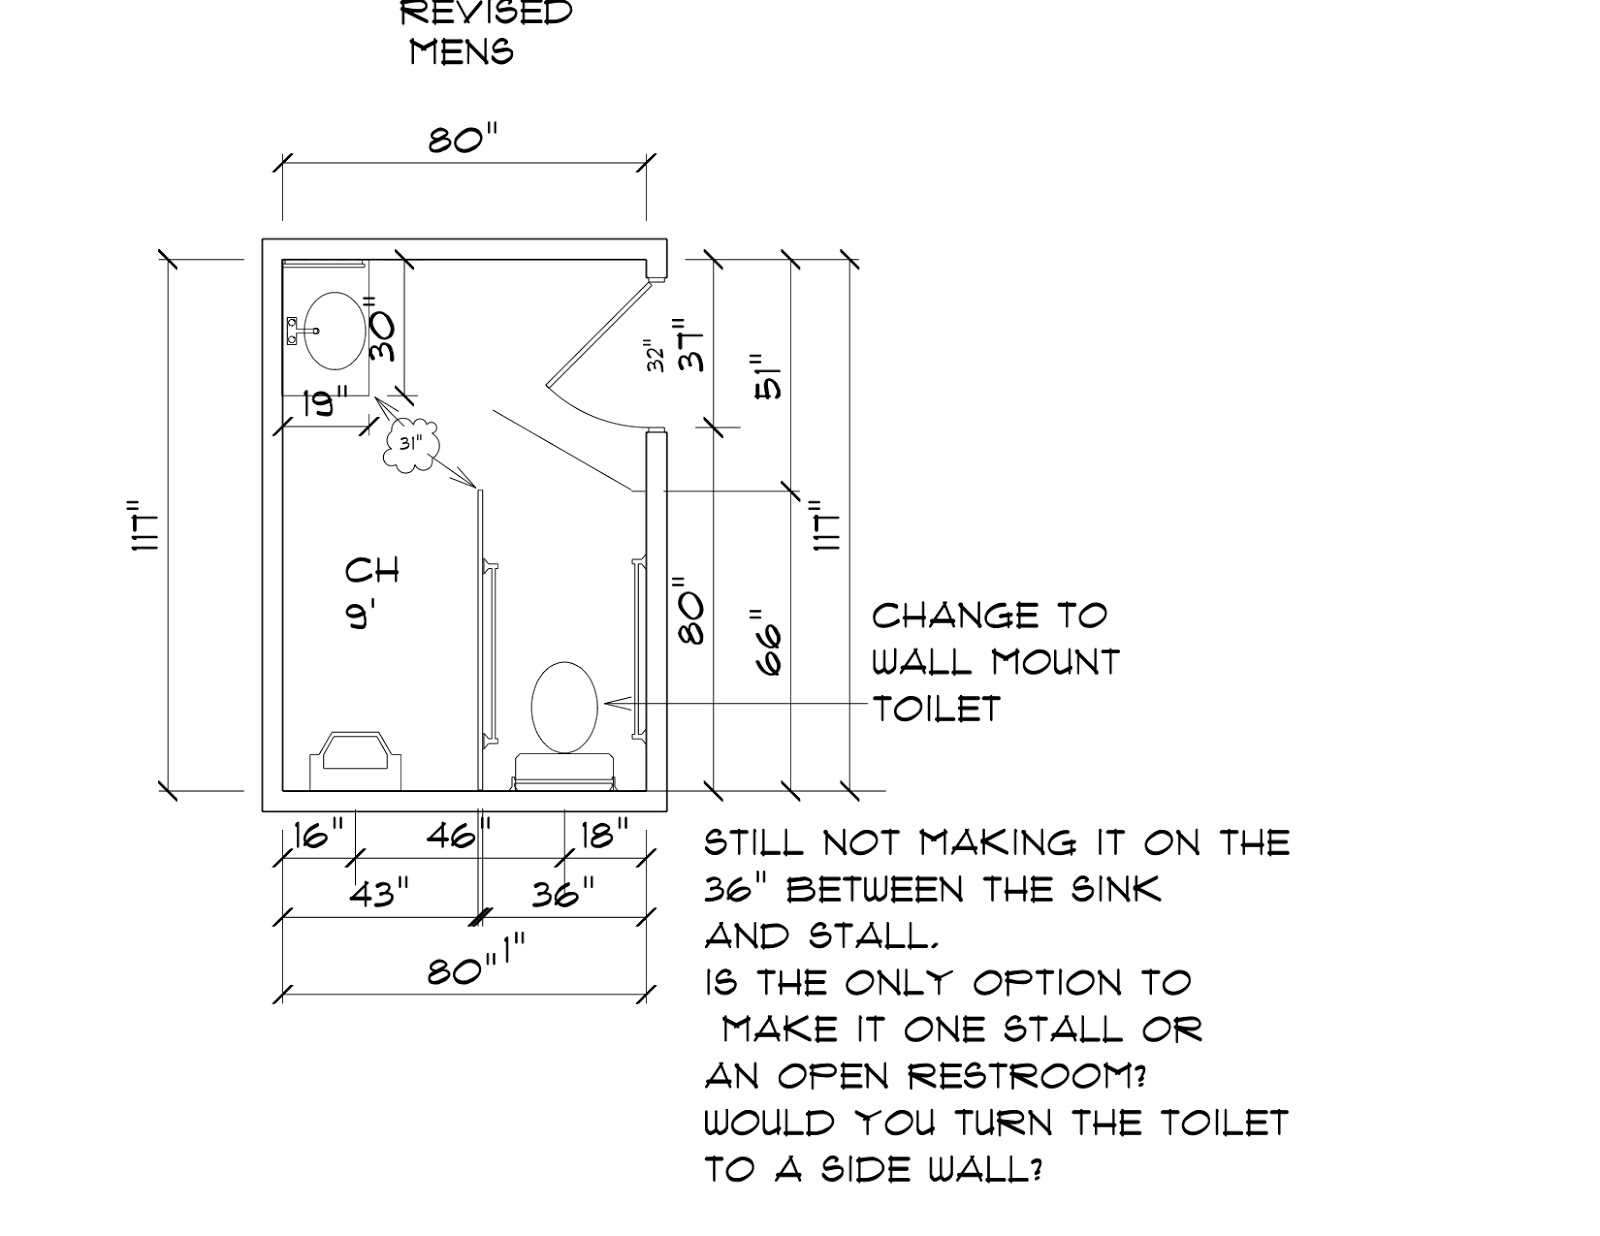 ADA: Redesigning a Public Men's Bathroom based on ADA Regulations ...